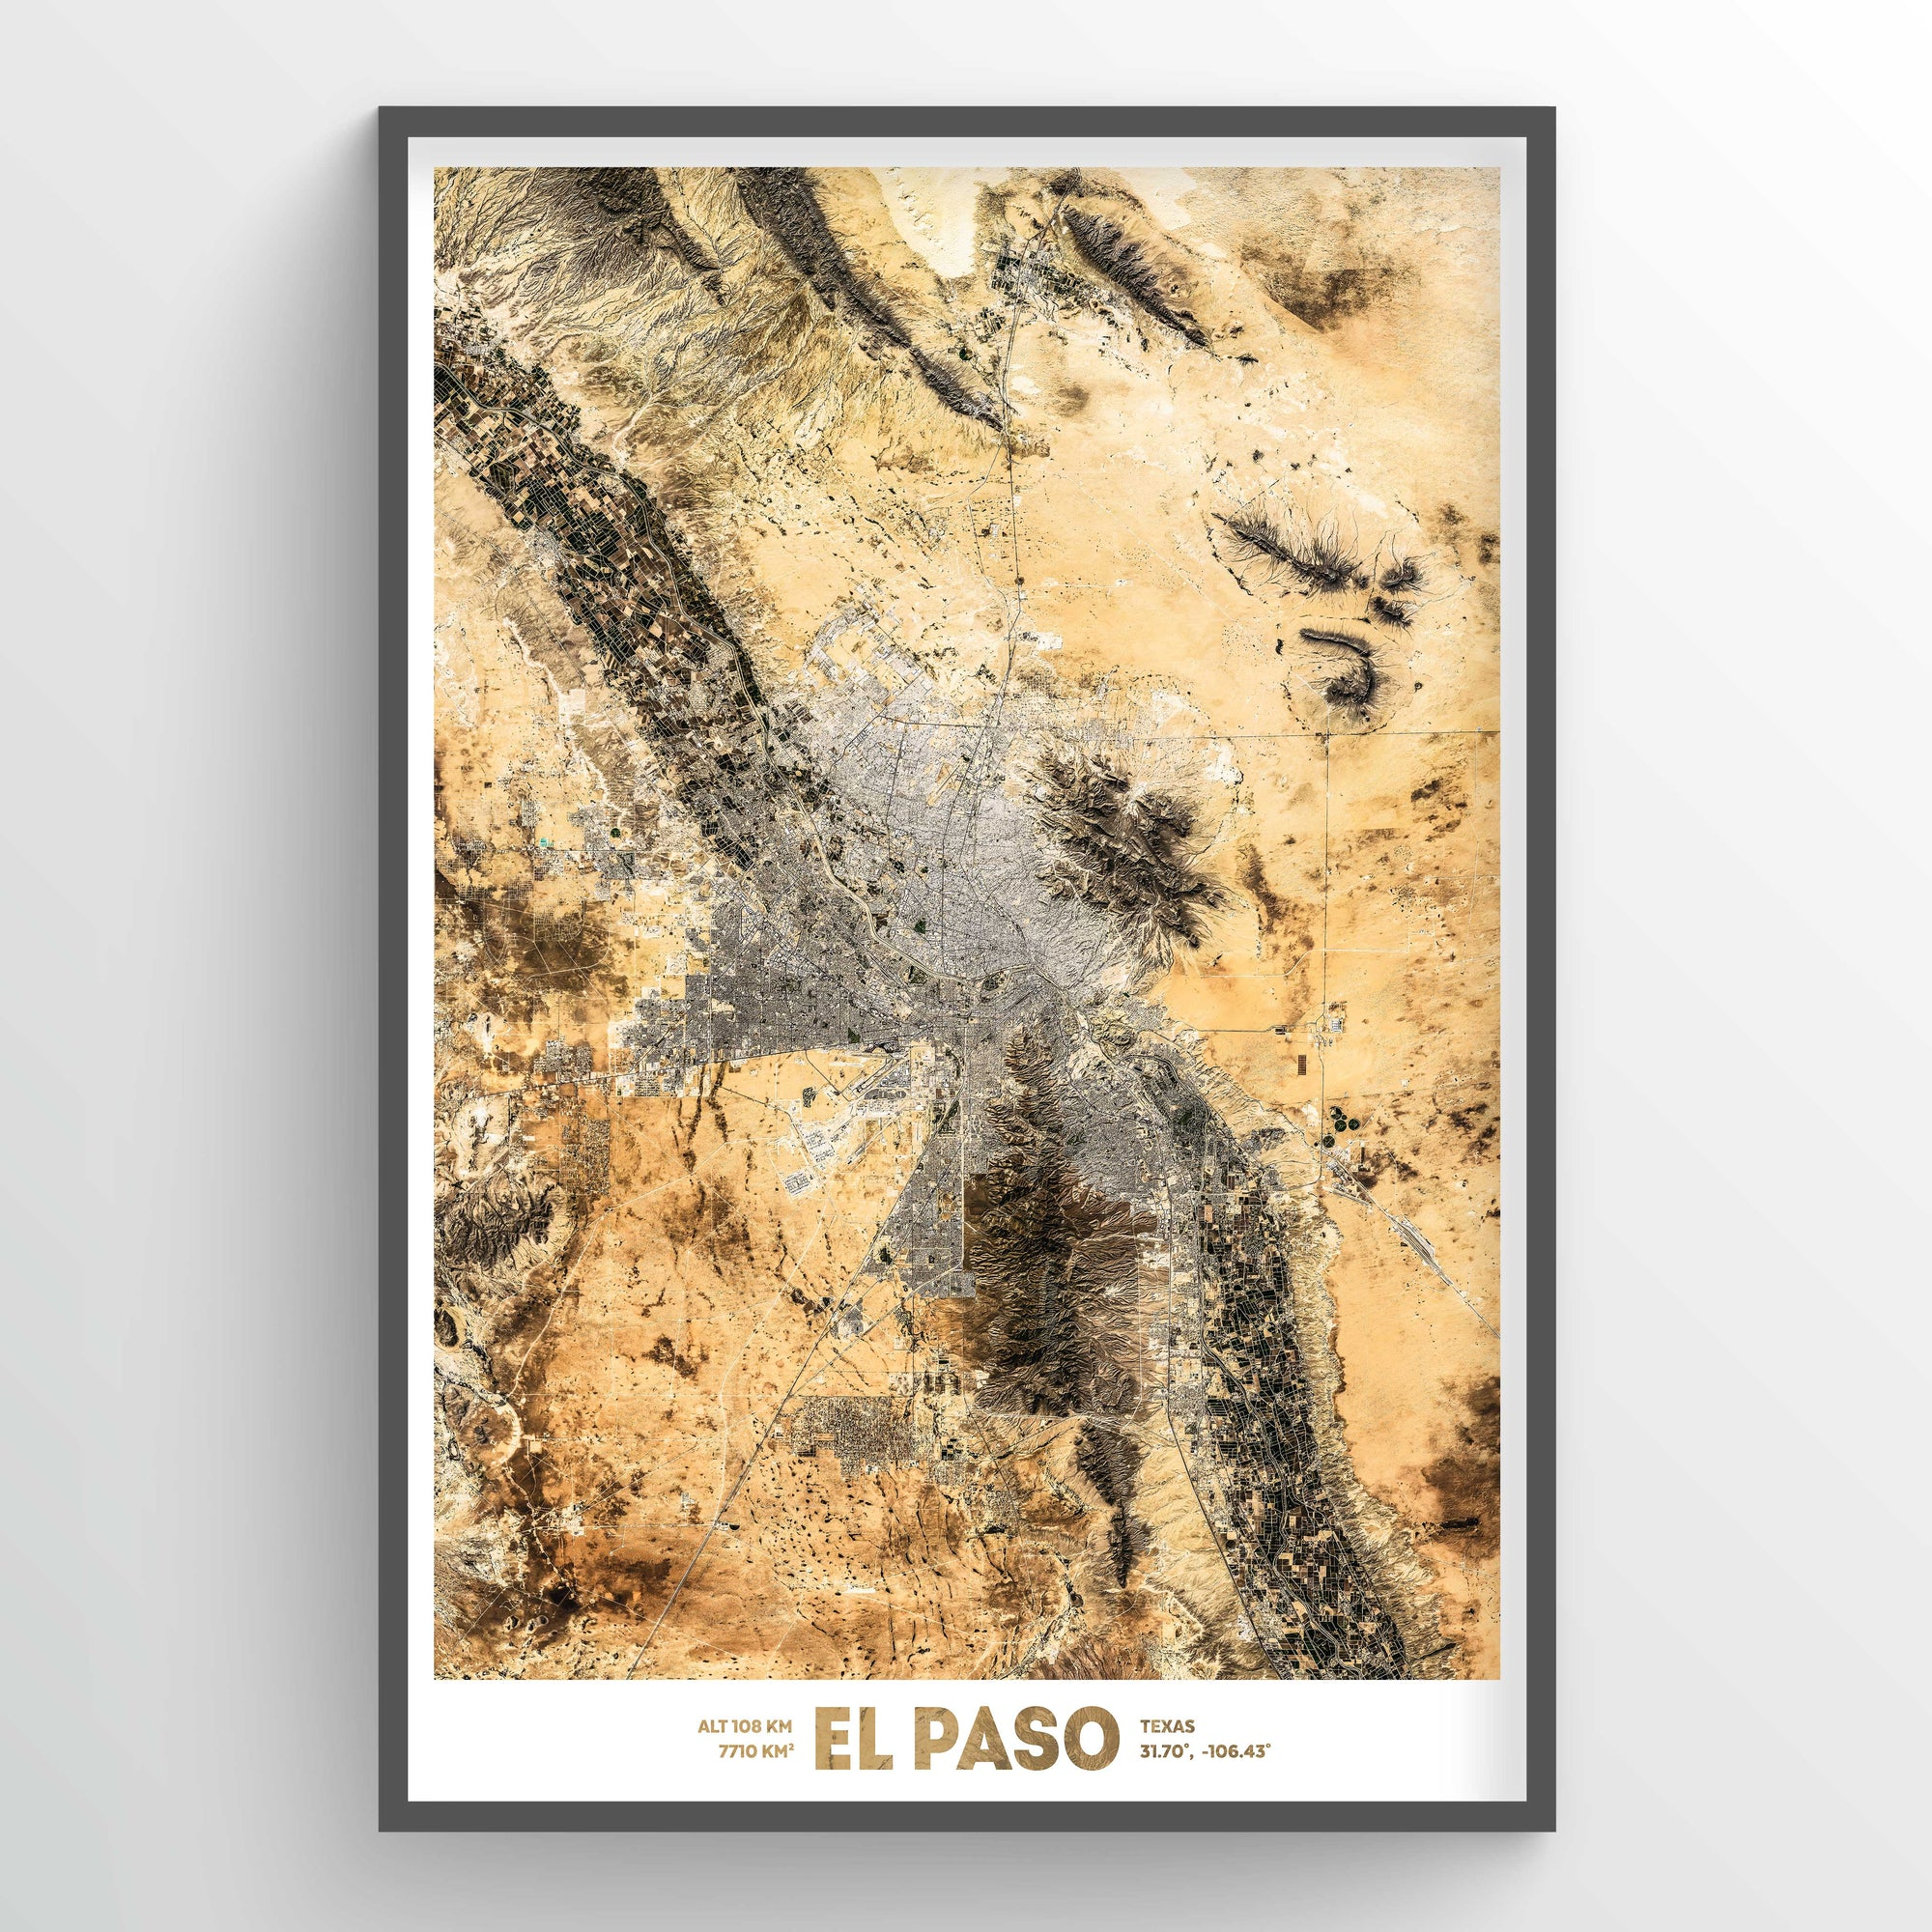 El Paso Earth Photography - Art Print - Point Two Design